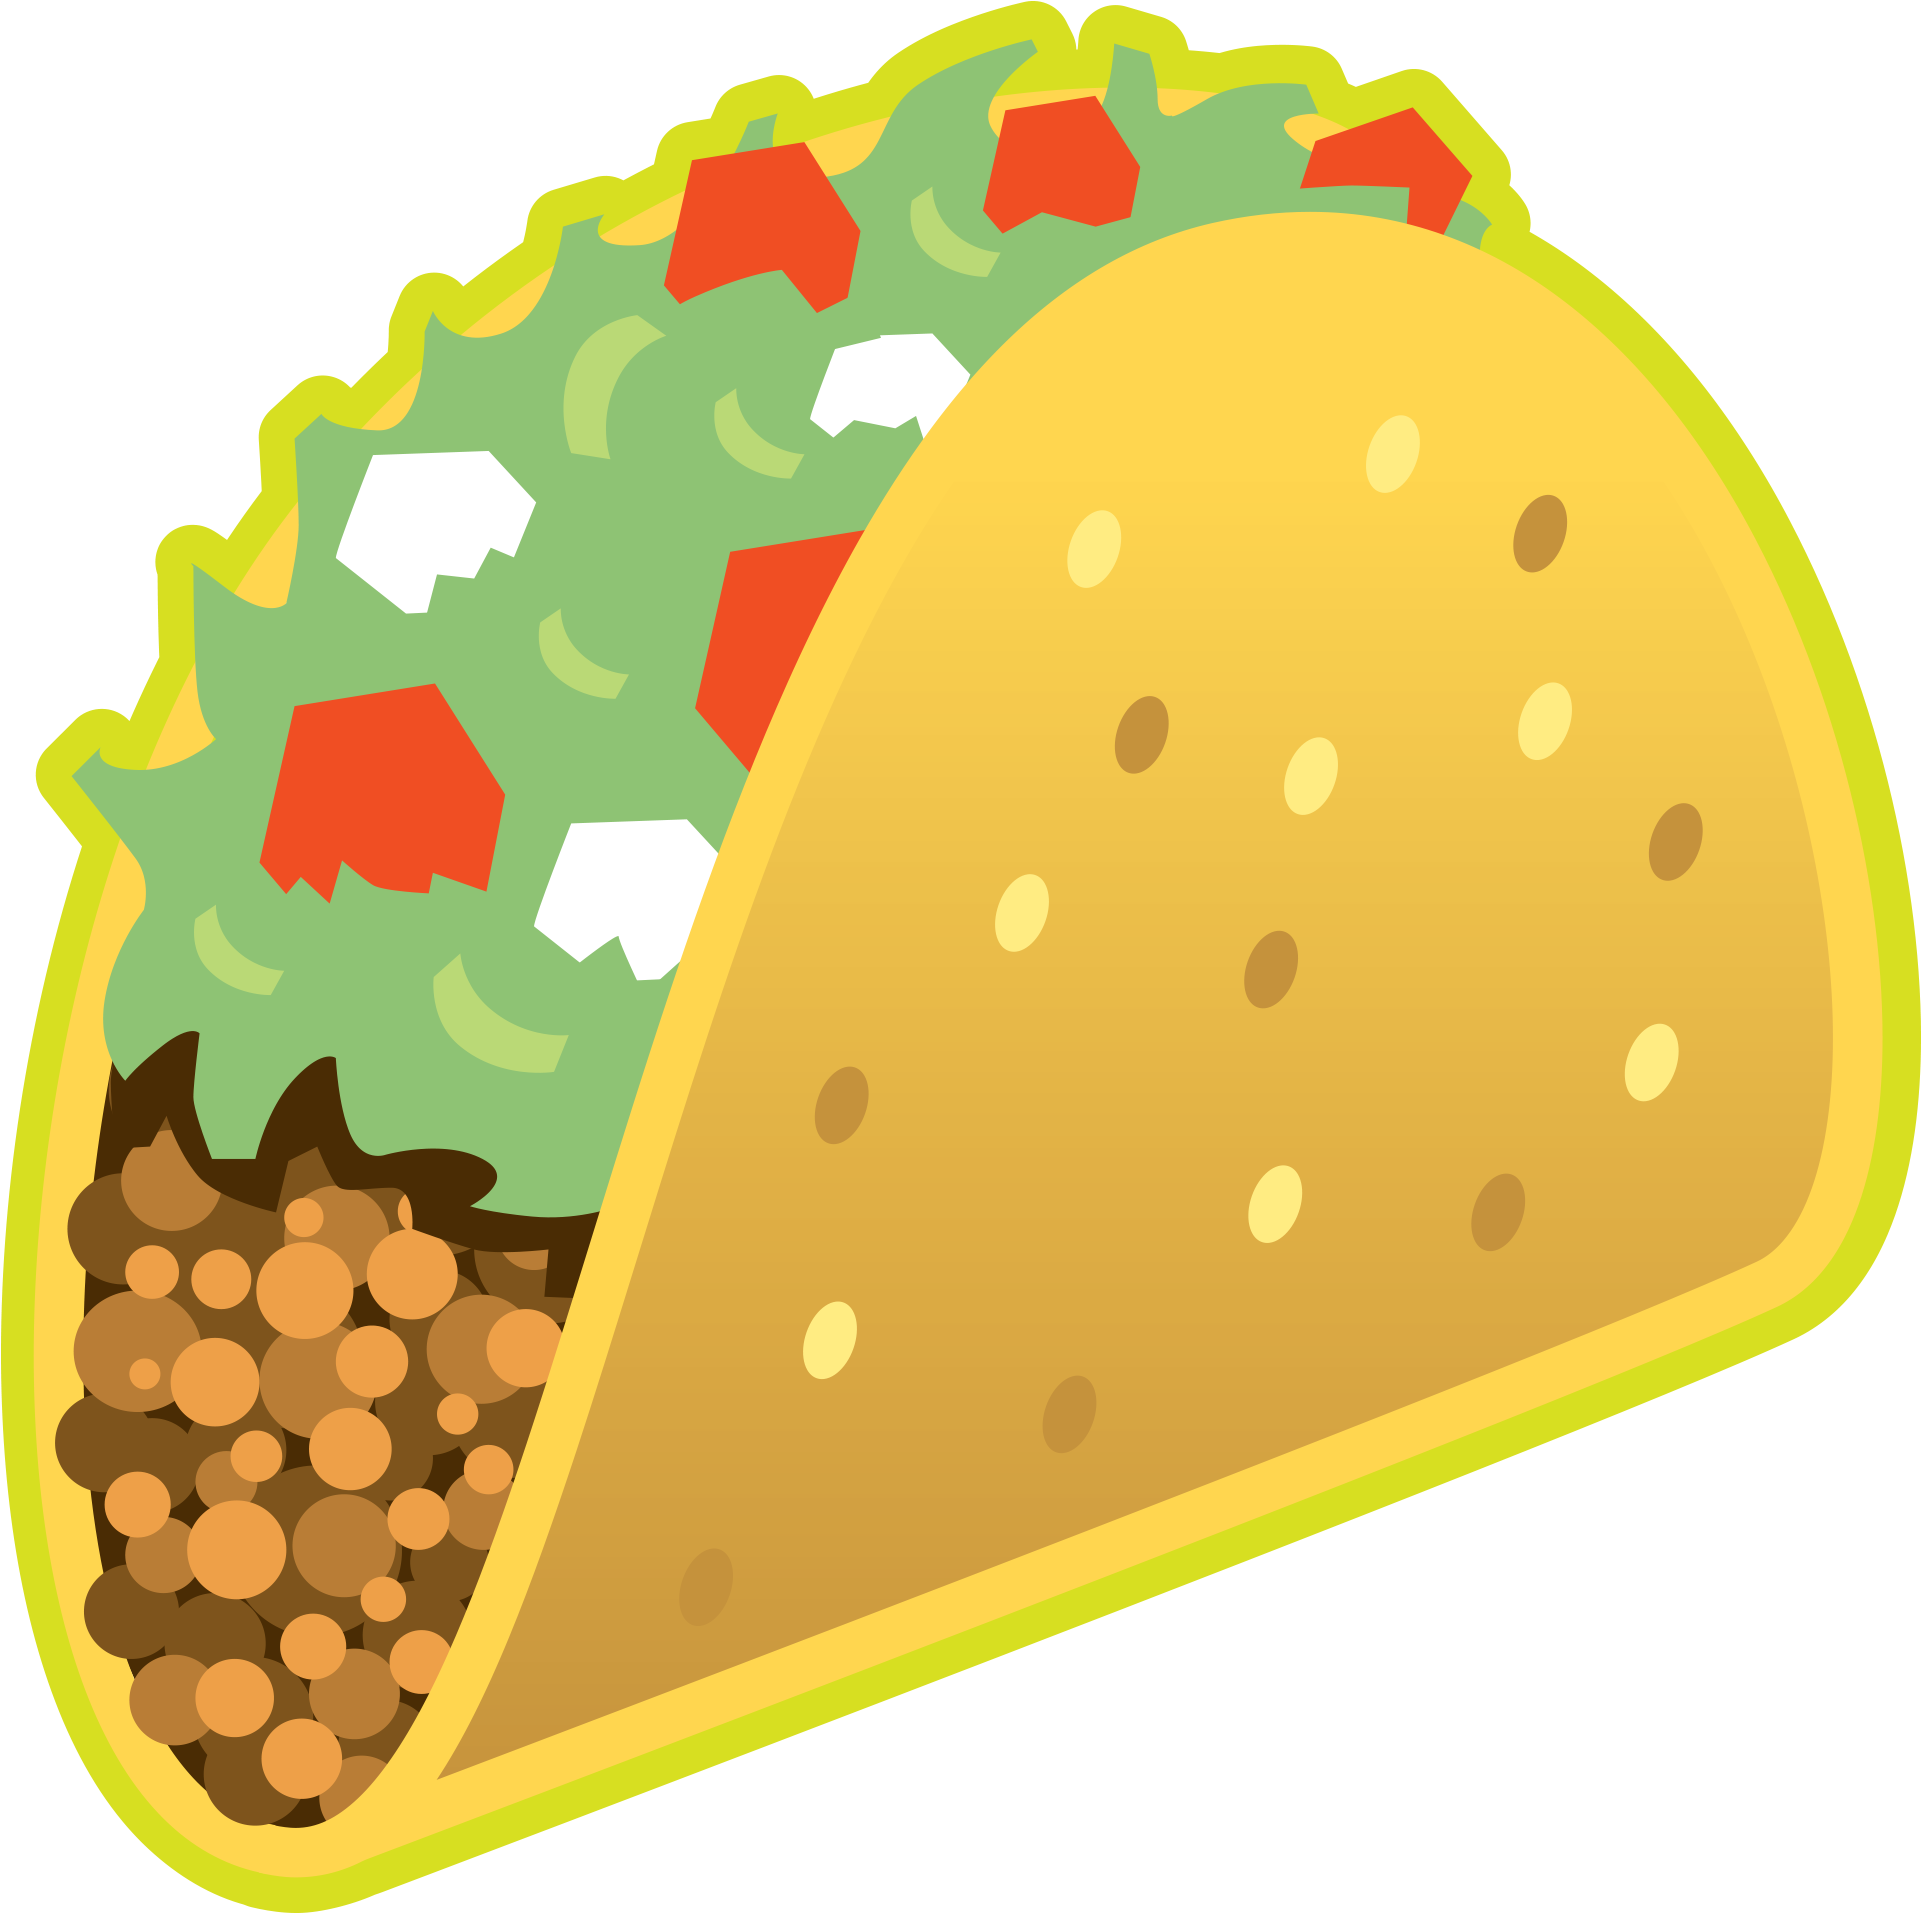 Taco emoji png. Download image with no